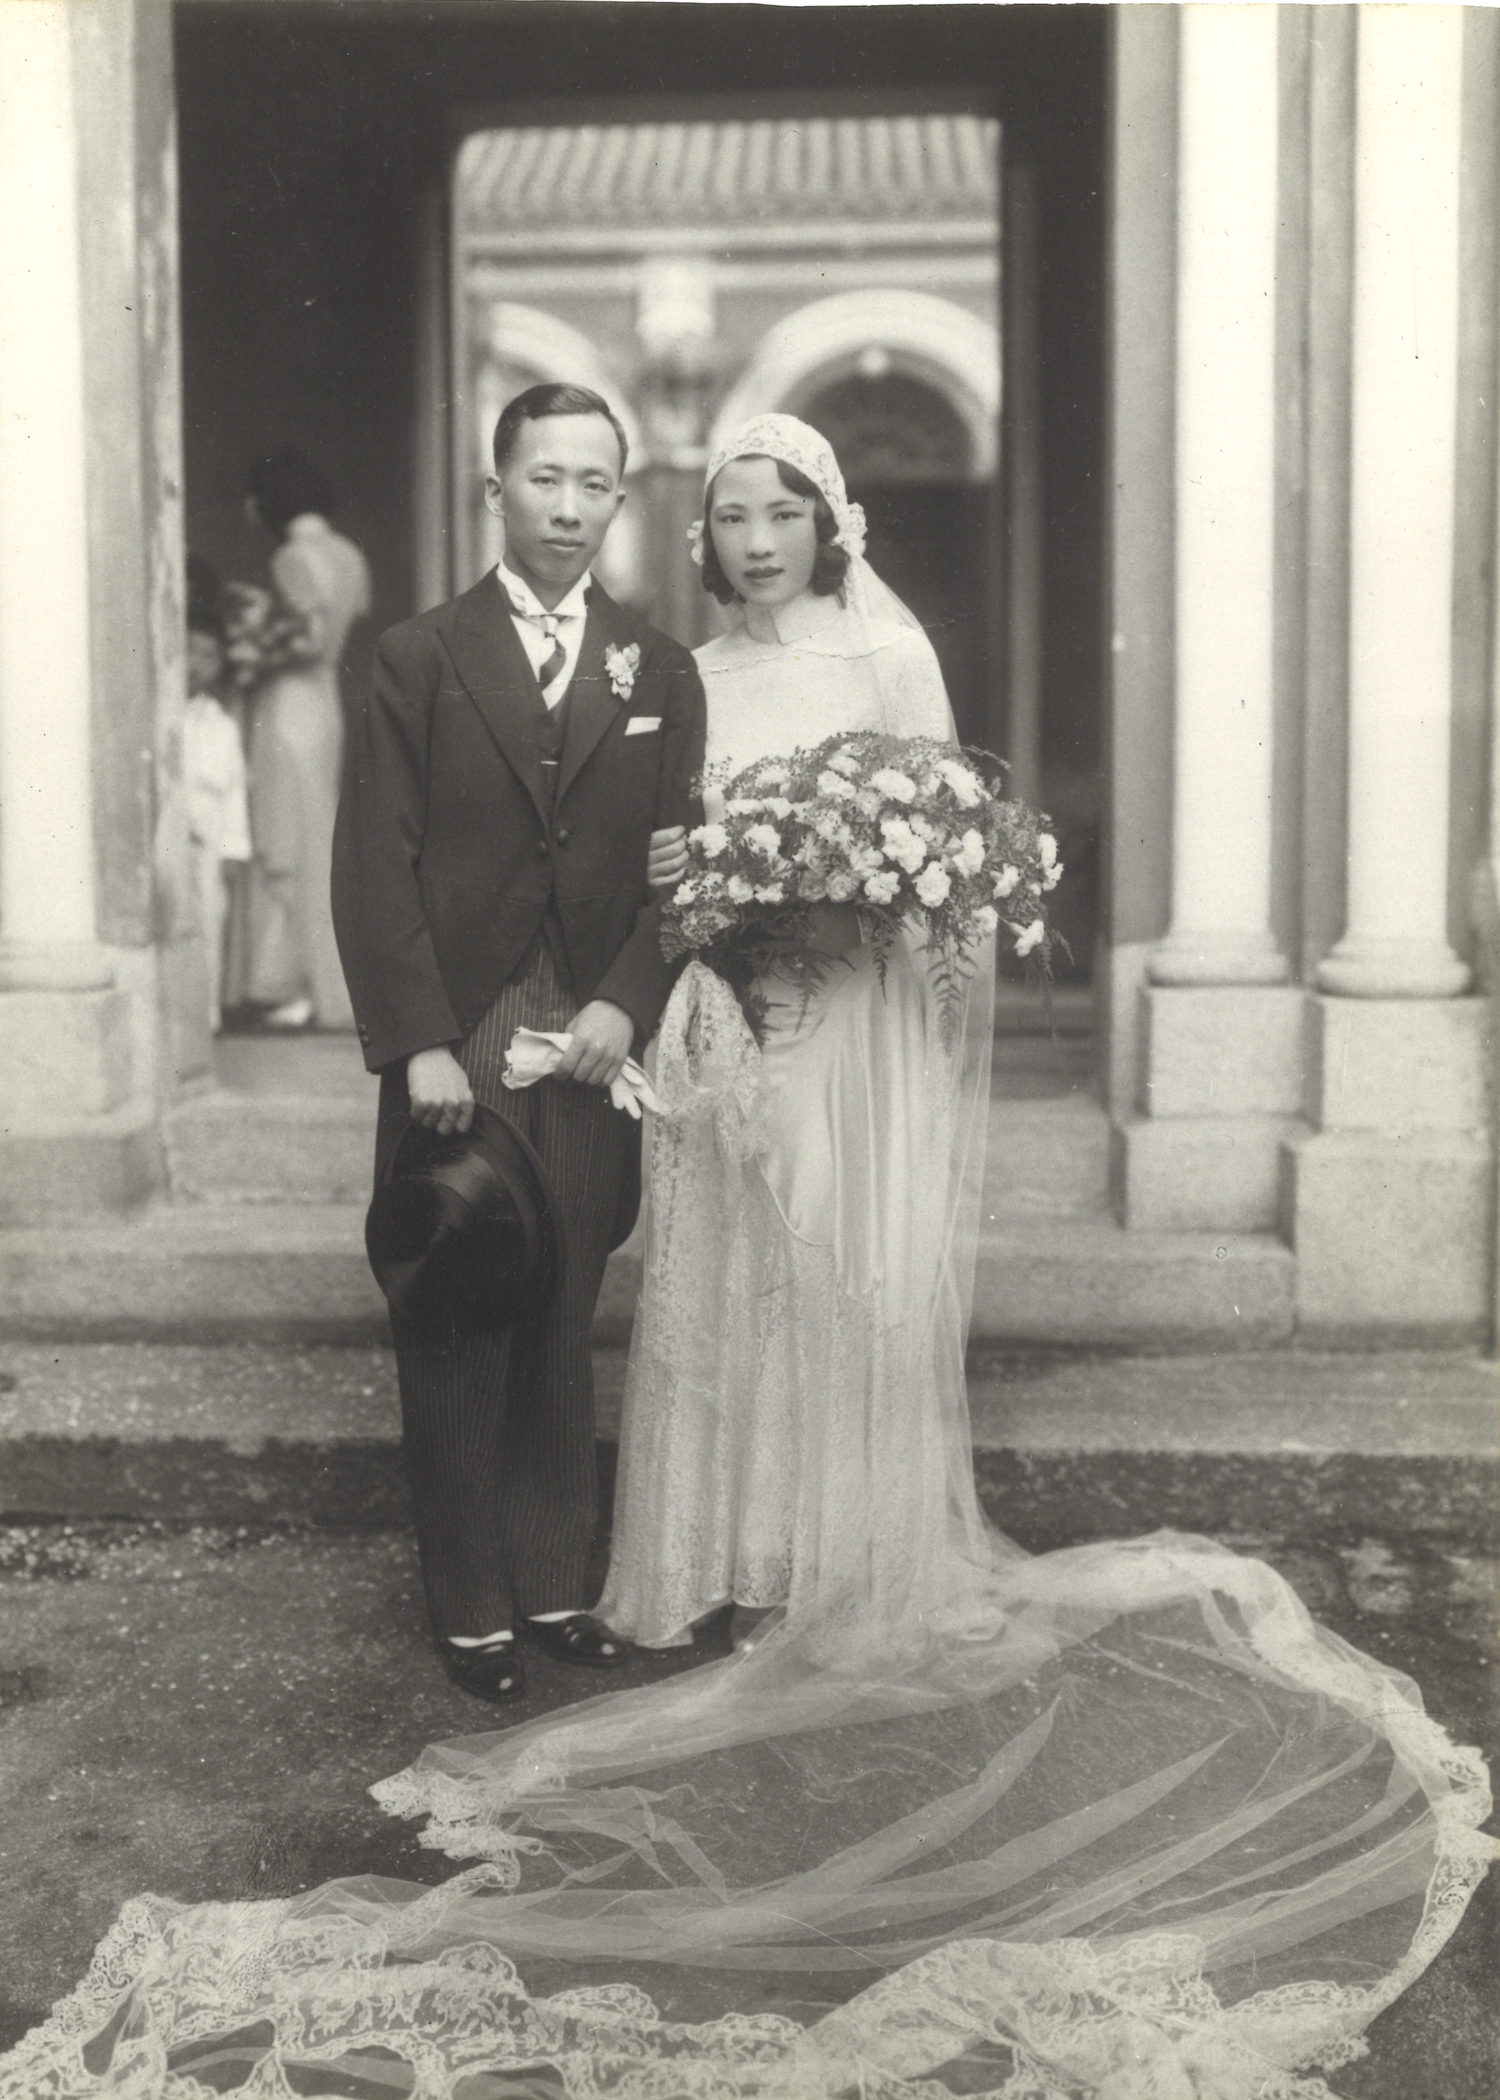 CH Lam and WK Au wedding, Union Church Hong Kong, 1932. Courtesy Dr. Samuel Lam.